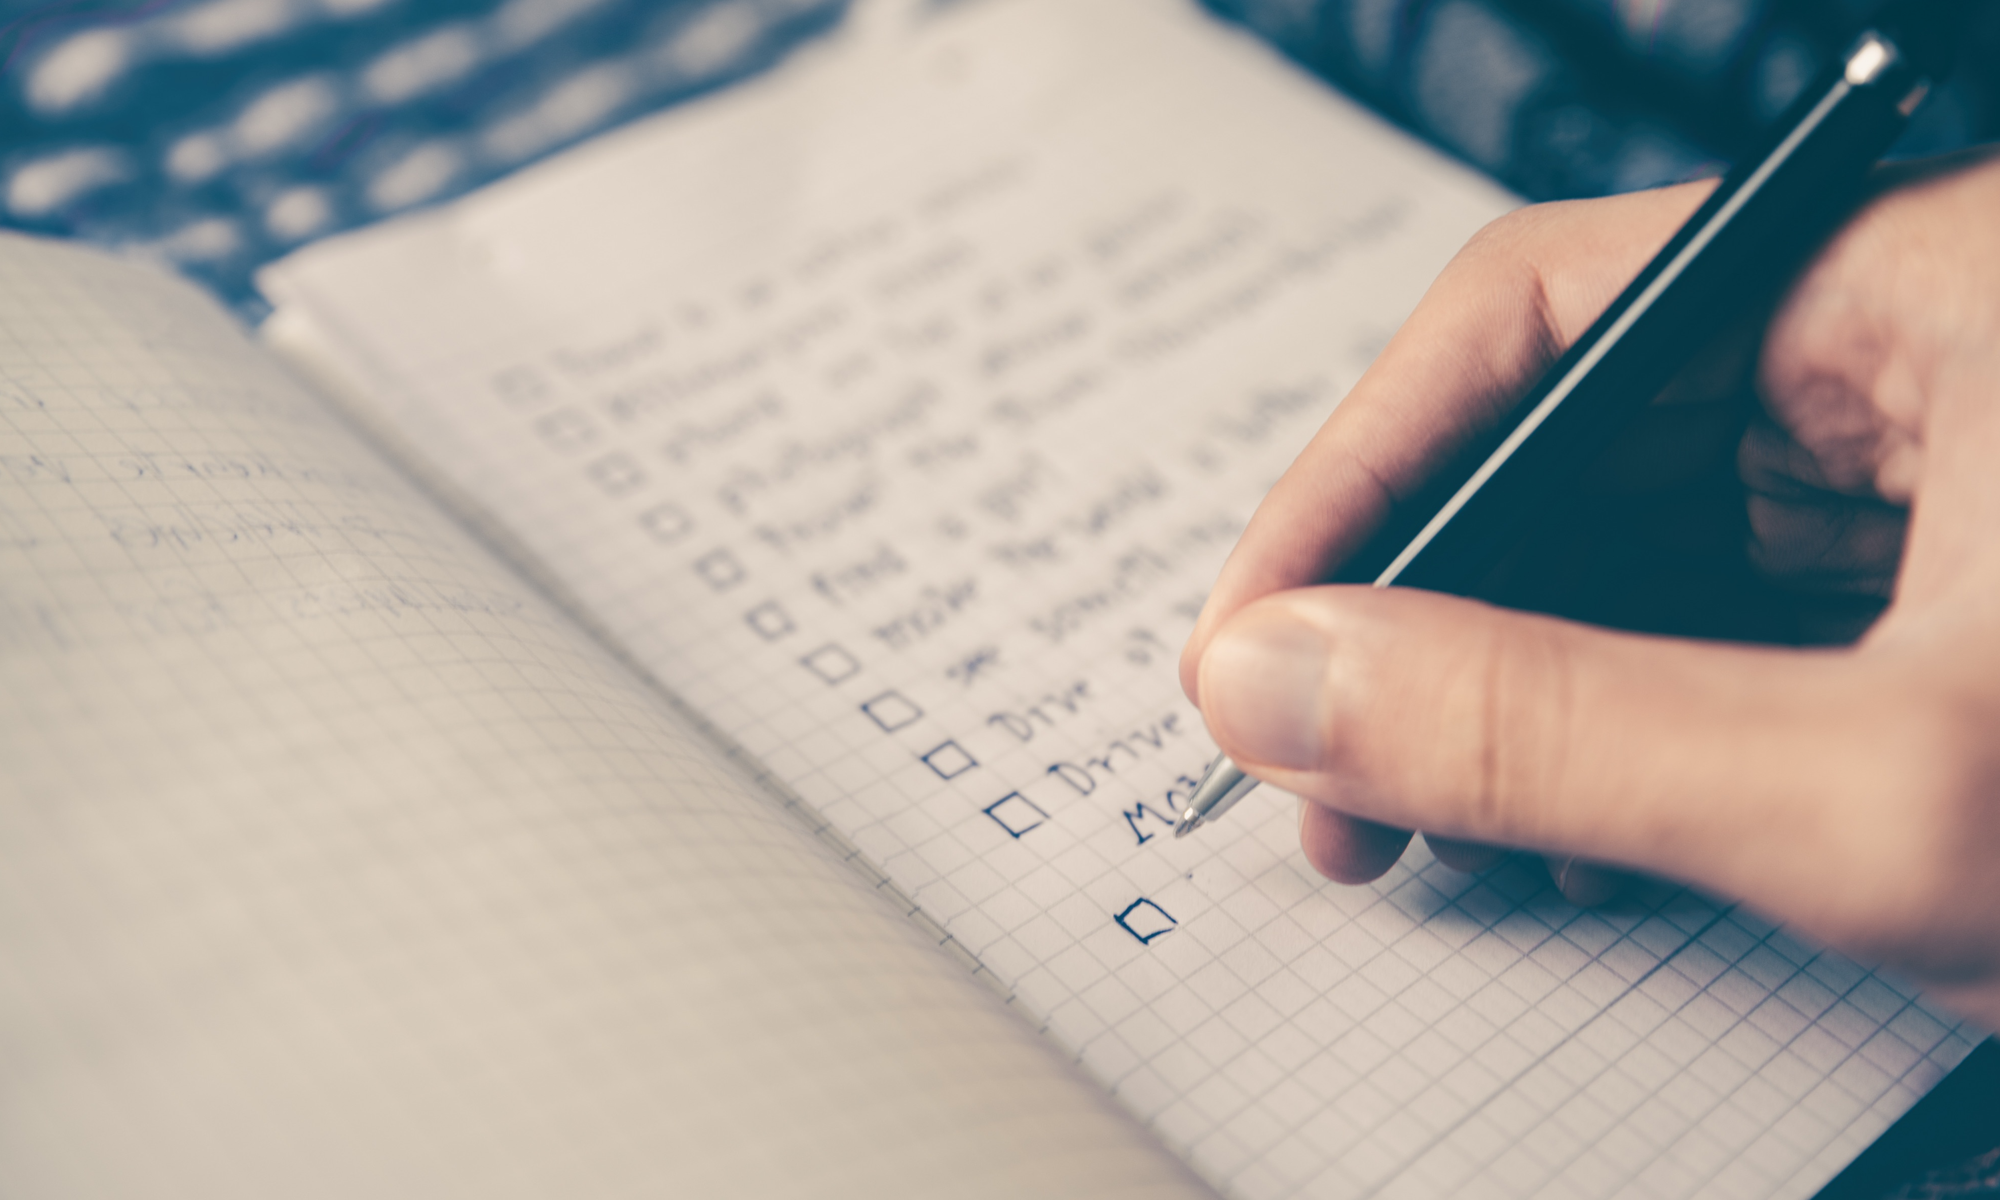 5 Things You Must Do Before Hosting Your First Webinar